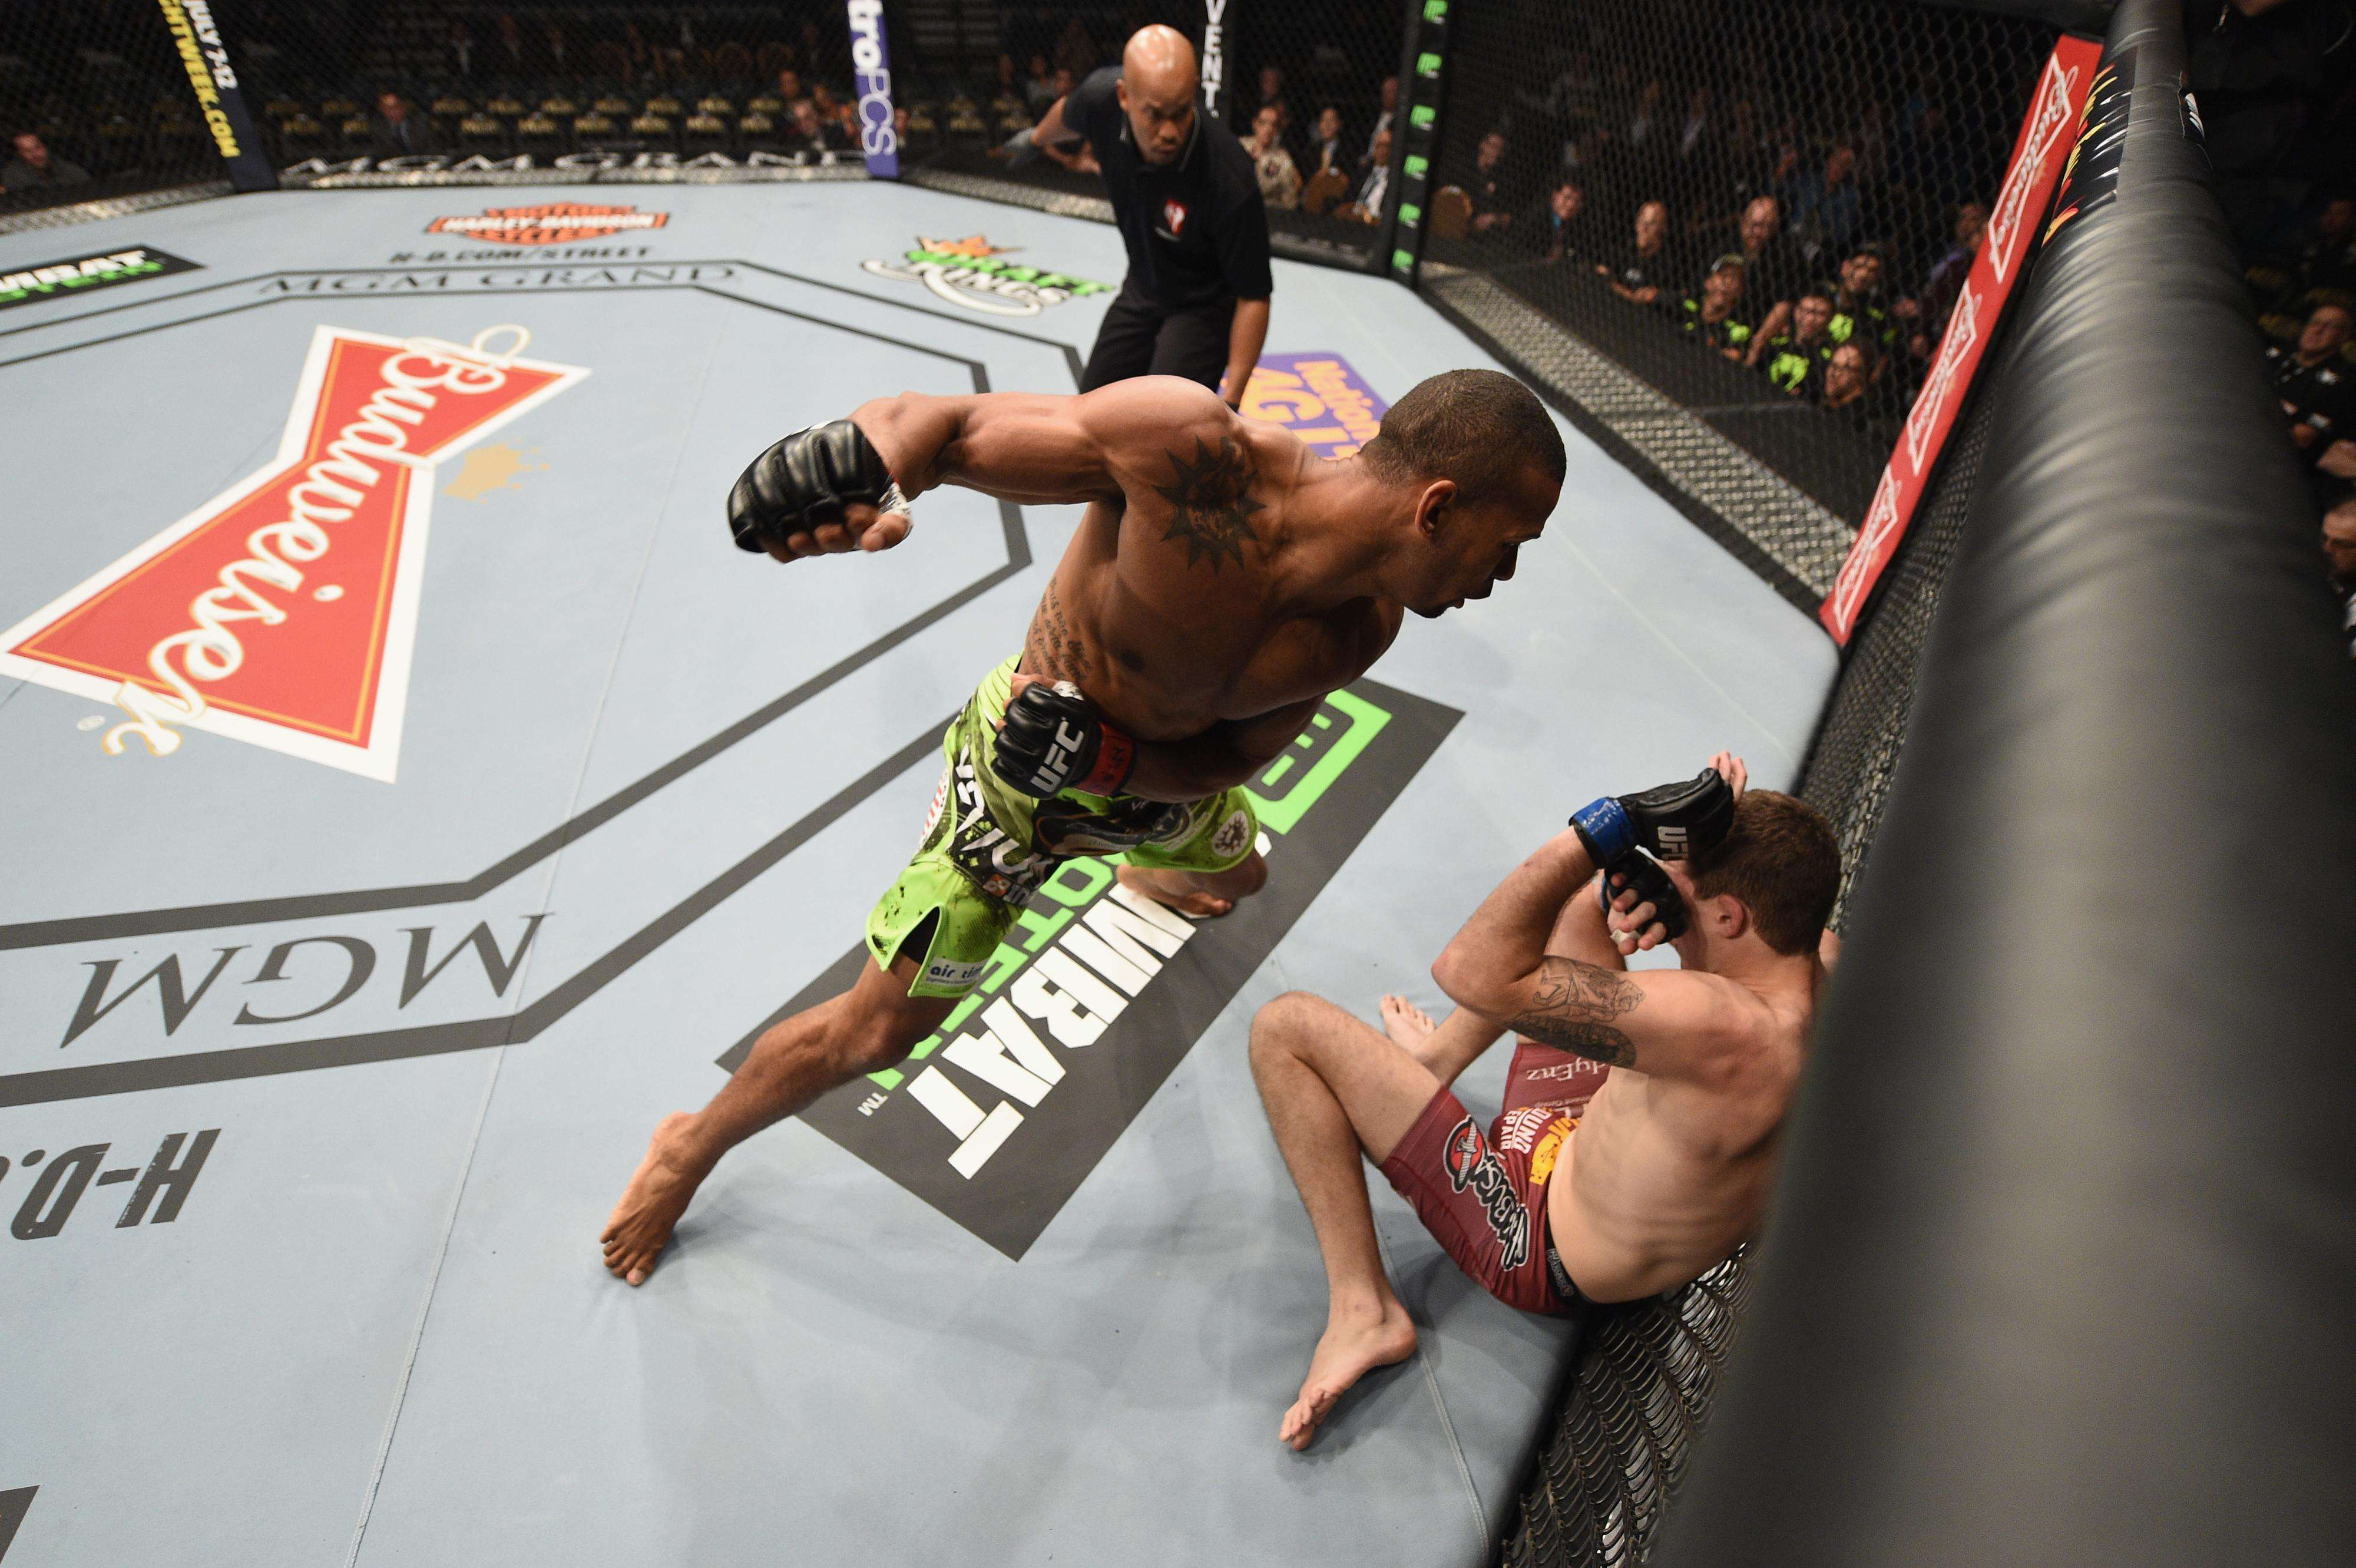 Thiago Marreta nocauteia Andy Enz no primeiro round do UFC 183 Foto: Josh Hedges/ Zuffa LLC /Getty Images